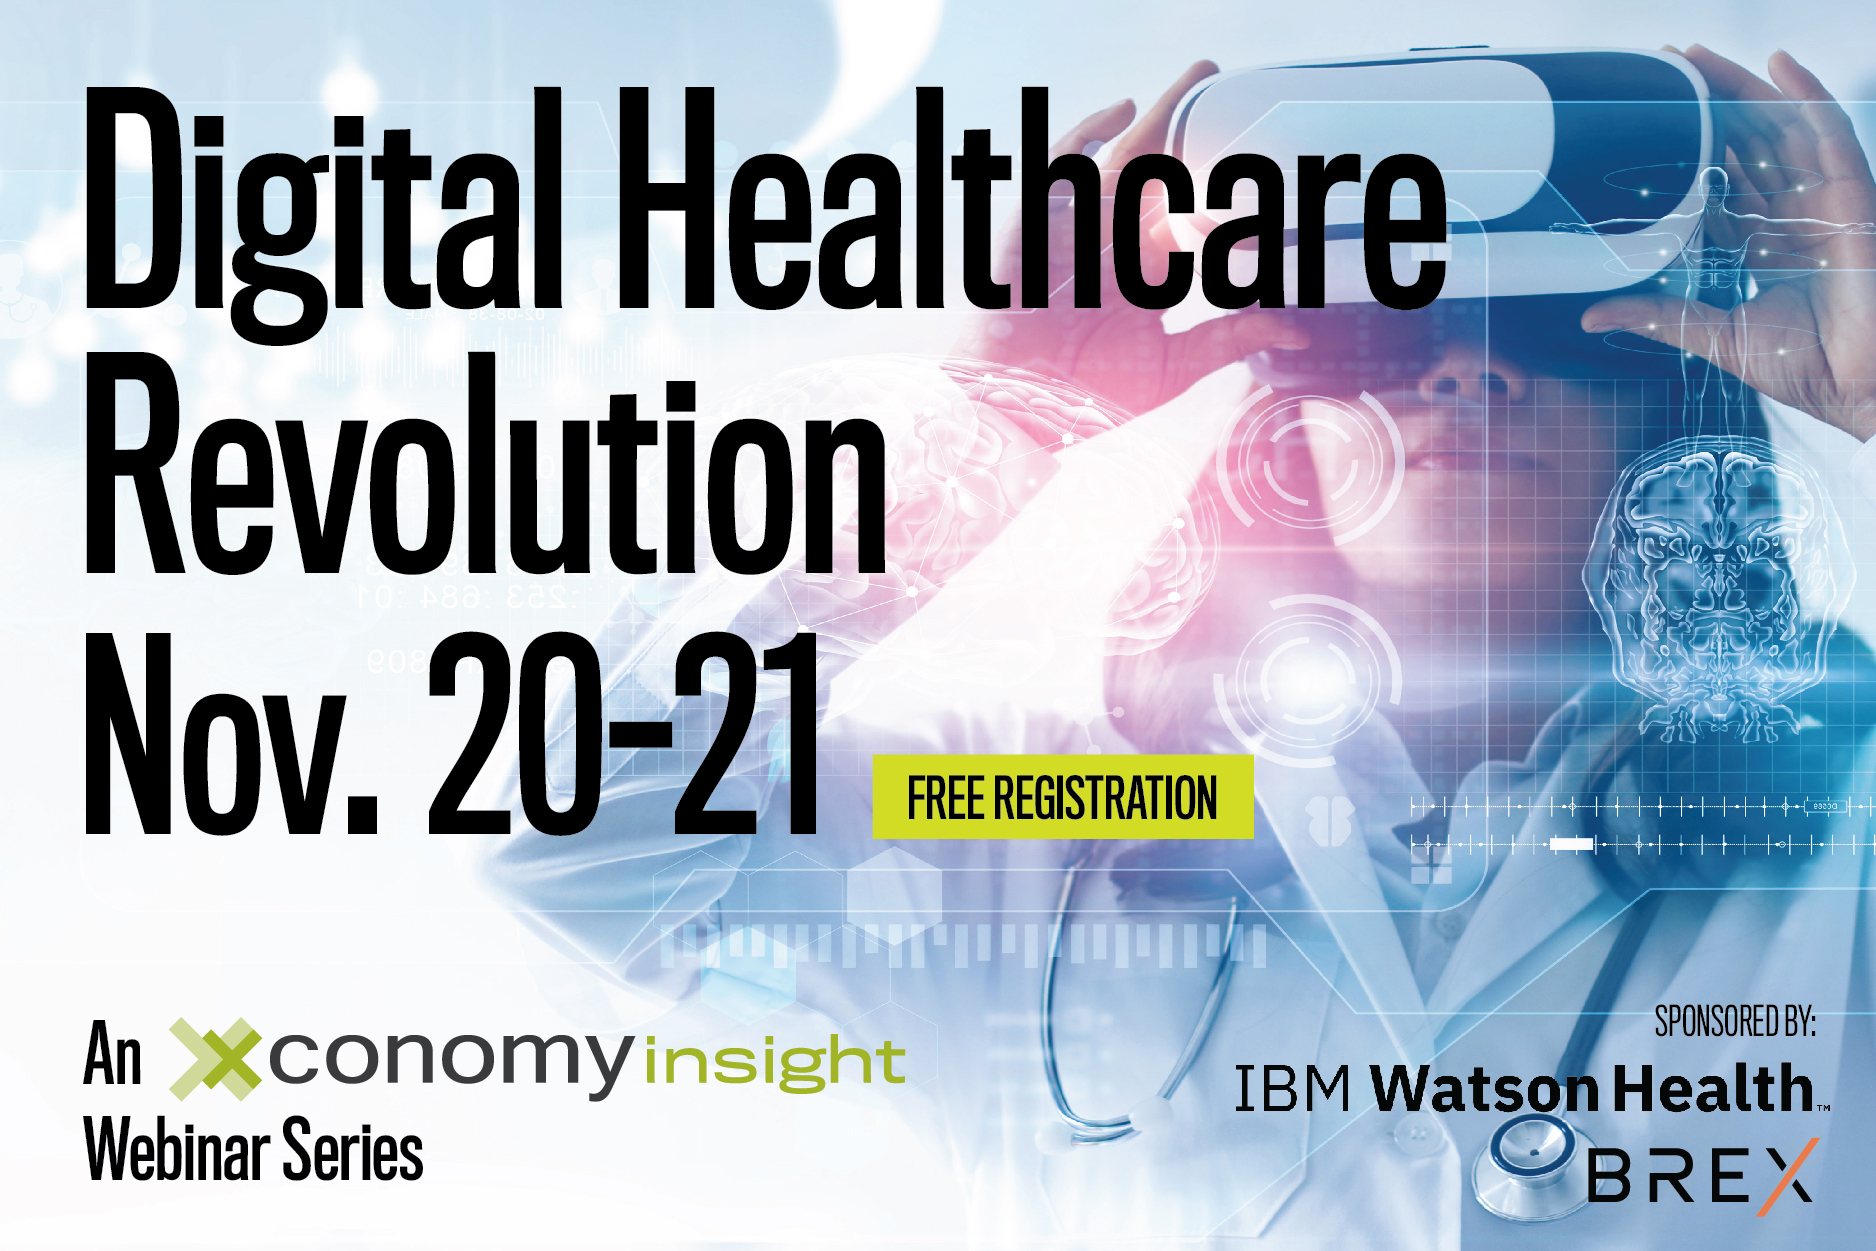 Digital Healthcare Revolution Webinar Series